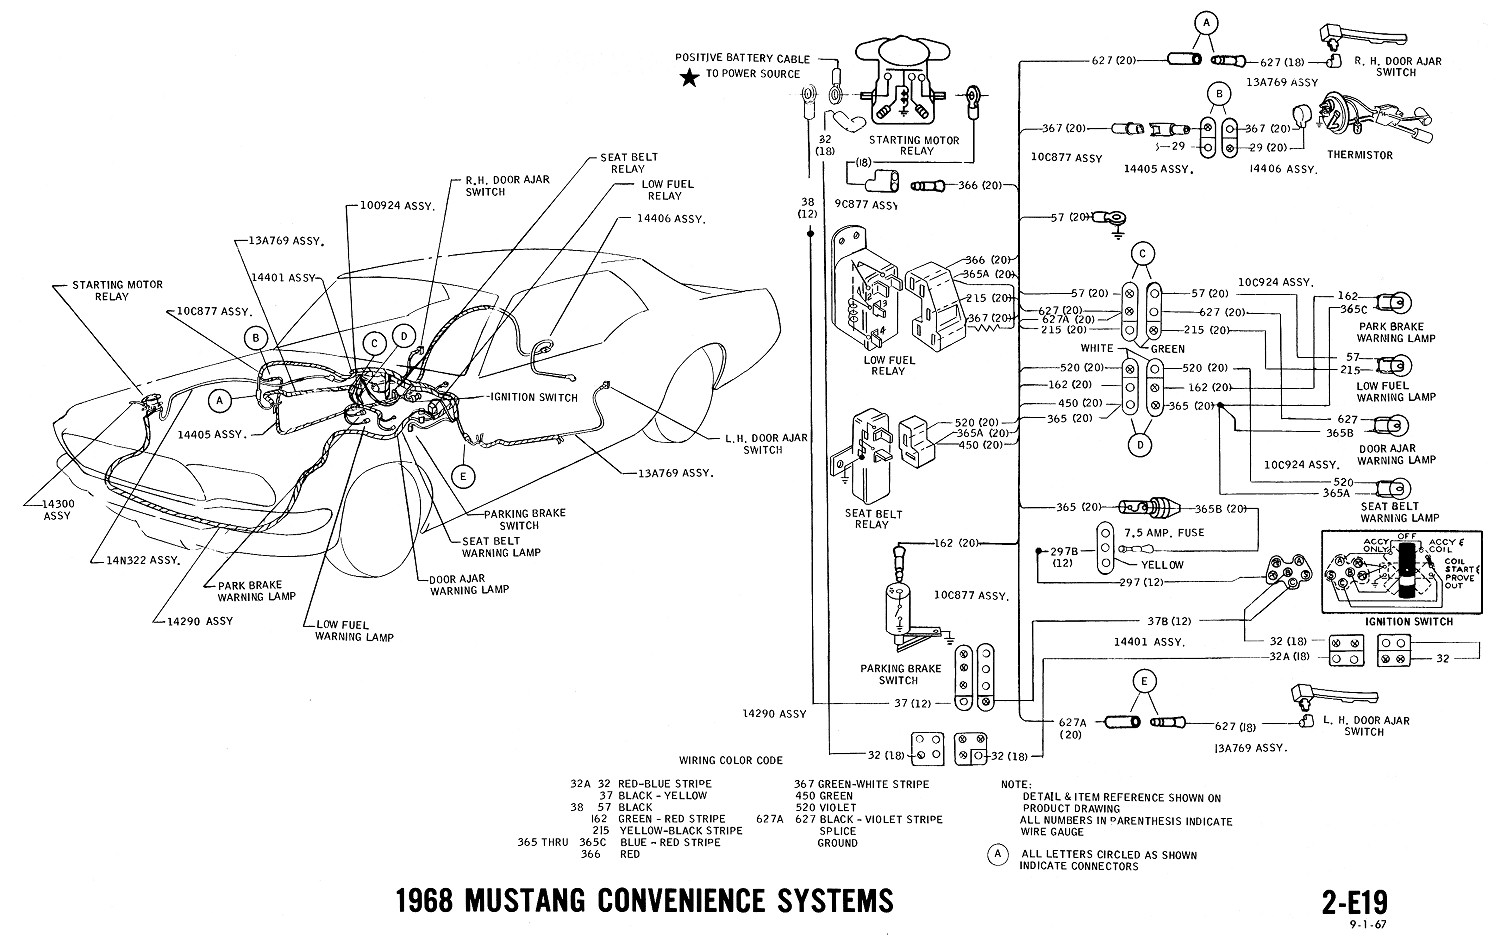 1968 mustang wiring diagrams evolving software convenience systems